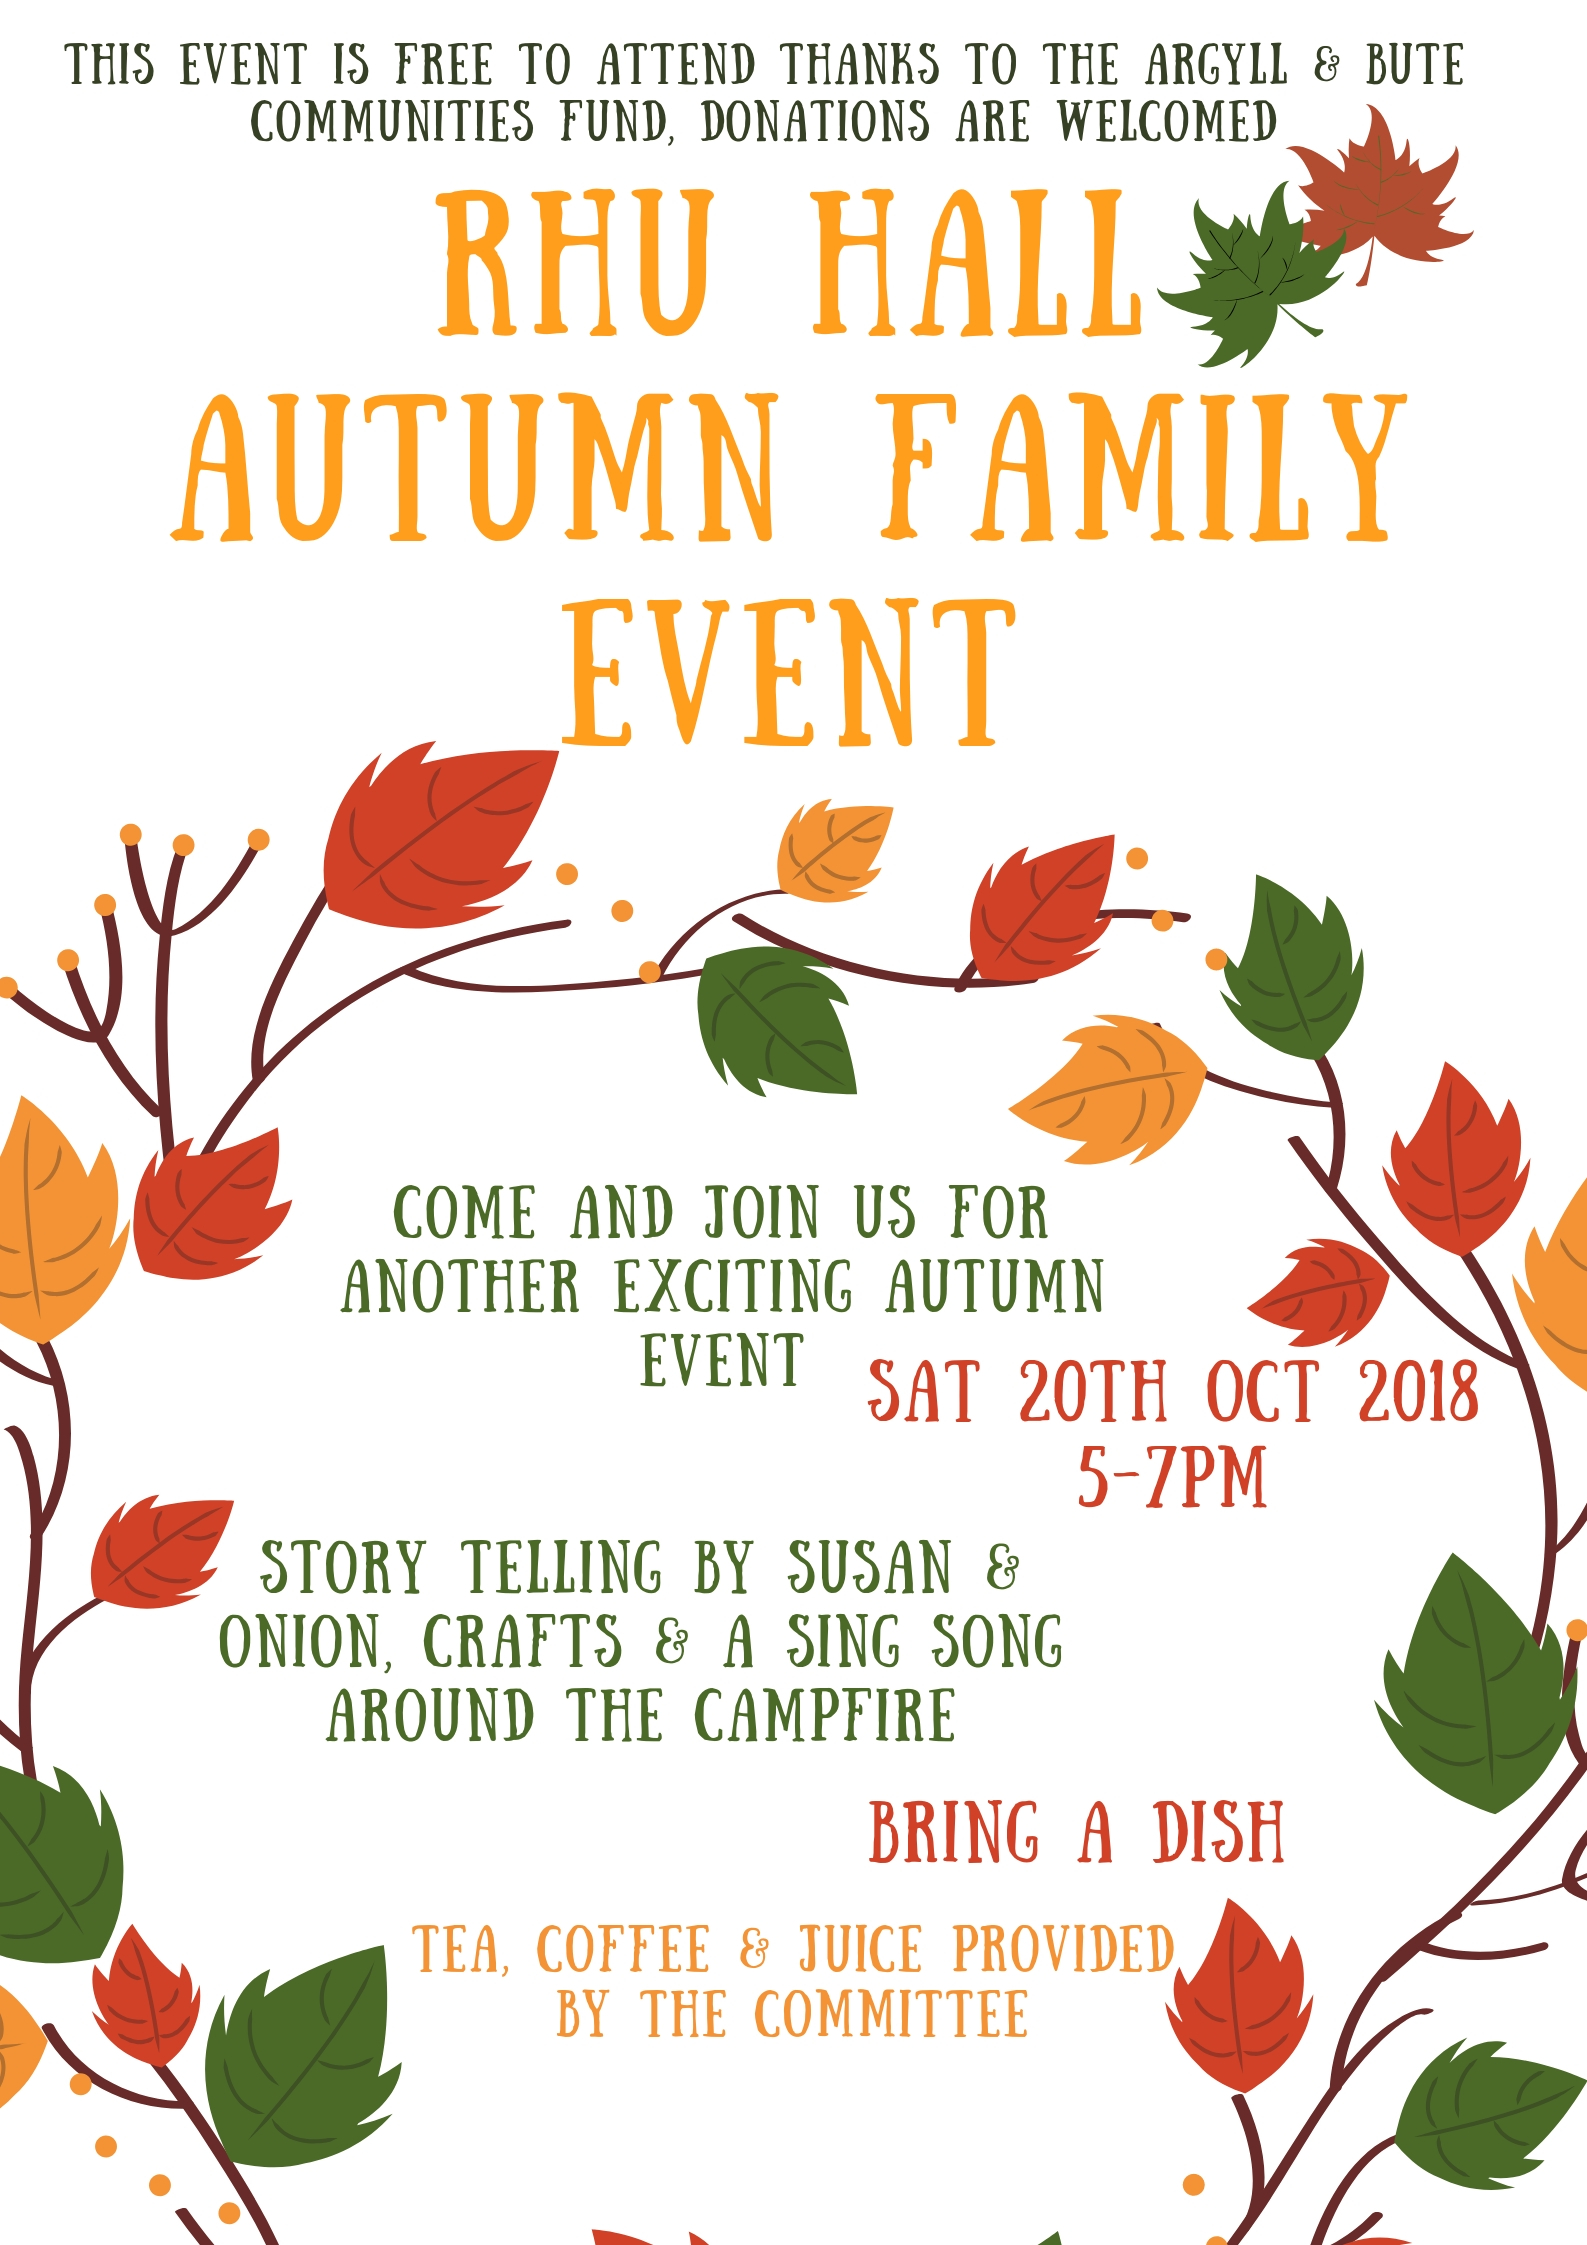 Free autumn family event on Sat October 20th 5-7pm  Story telling by susan and onon, crafts and singsong